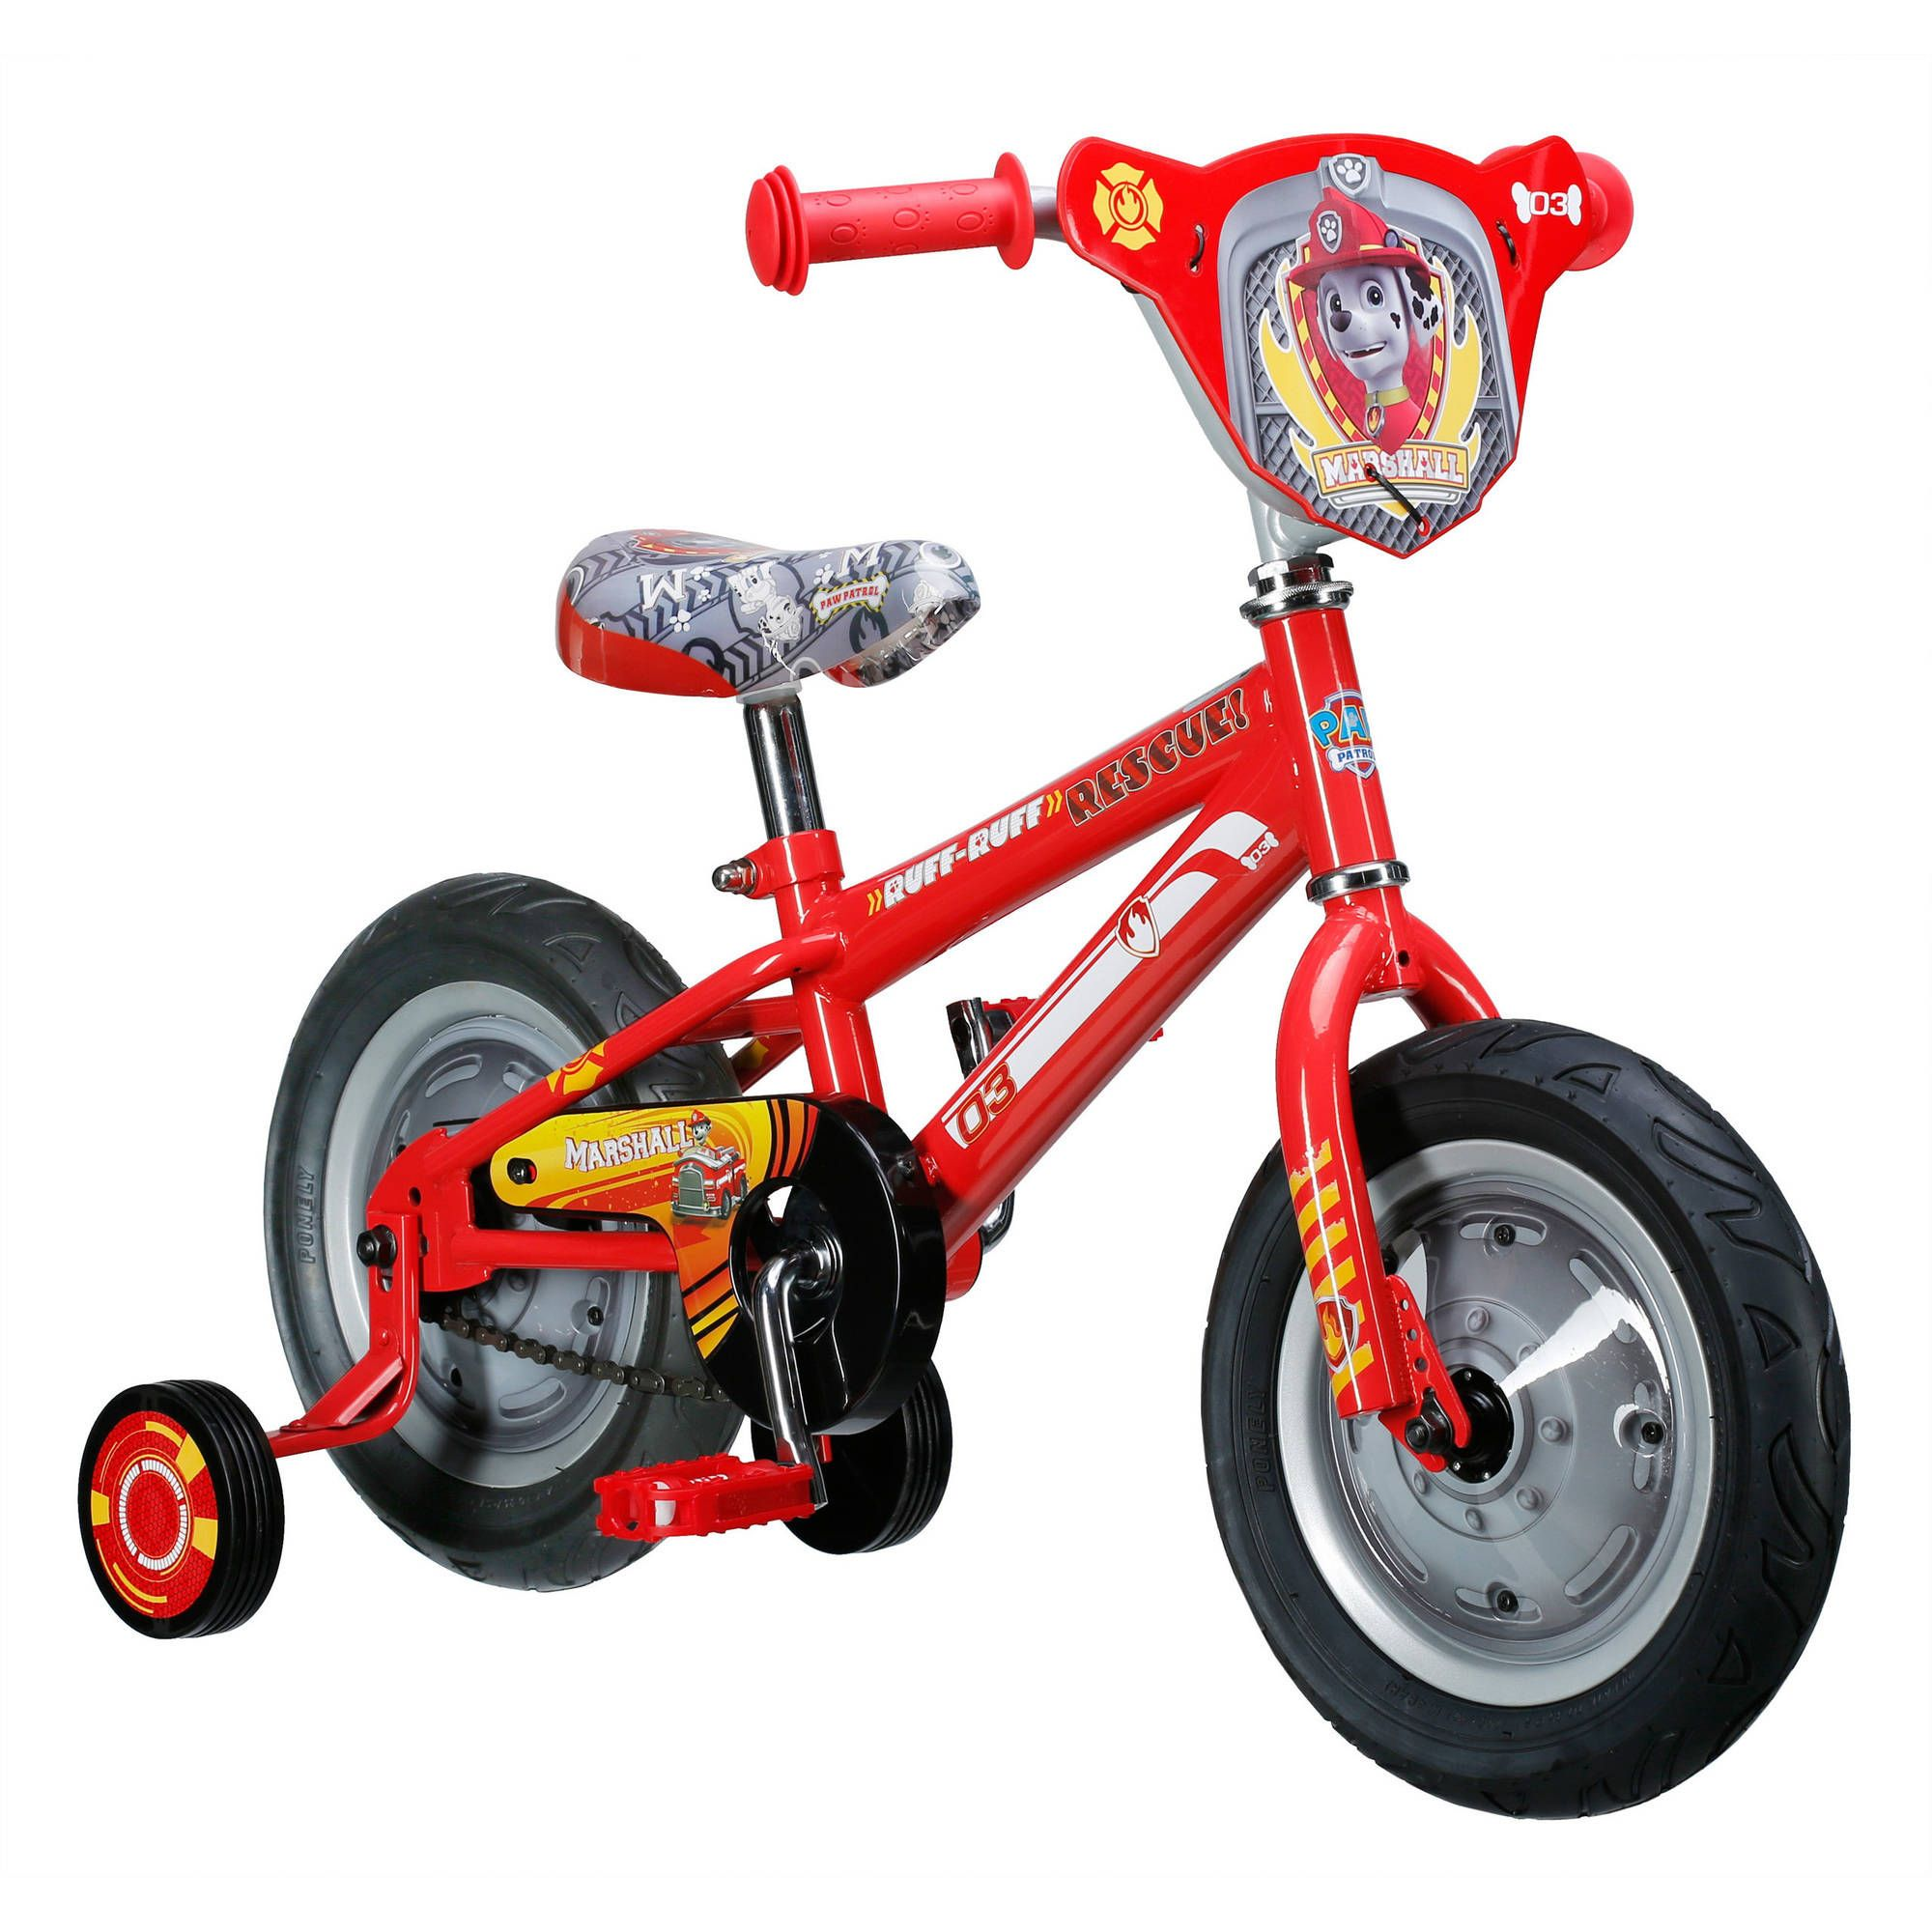 Search and Shopping more Children Toys at